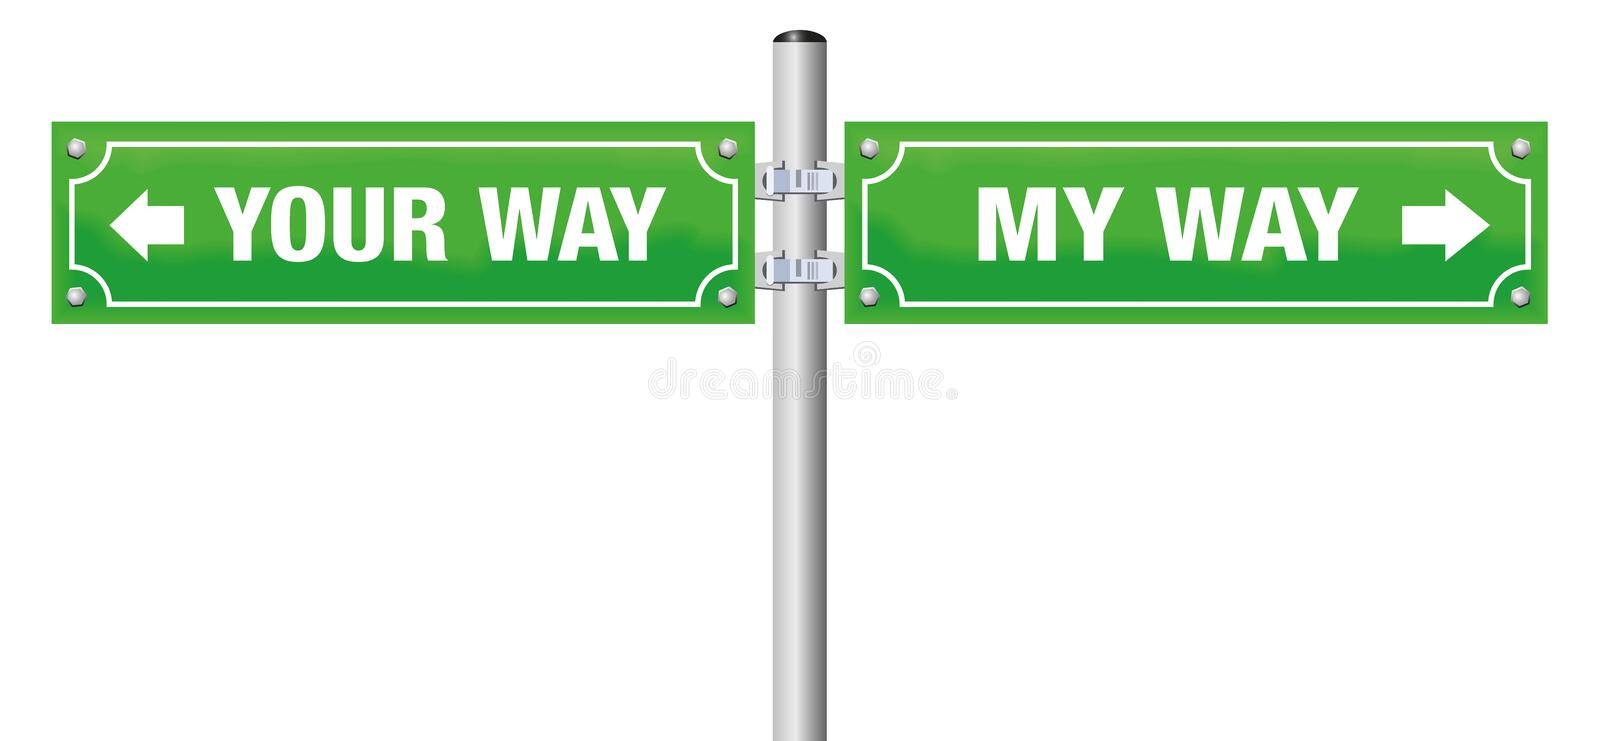 Going Separate Ways Street Sign. Going separate ways. MY WAY and YOUR WAY written on street signs - symbol for divorce, separation, for saying goodbye or royalty free illustration